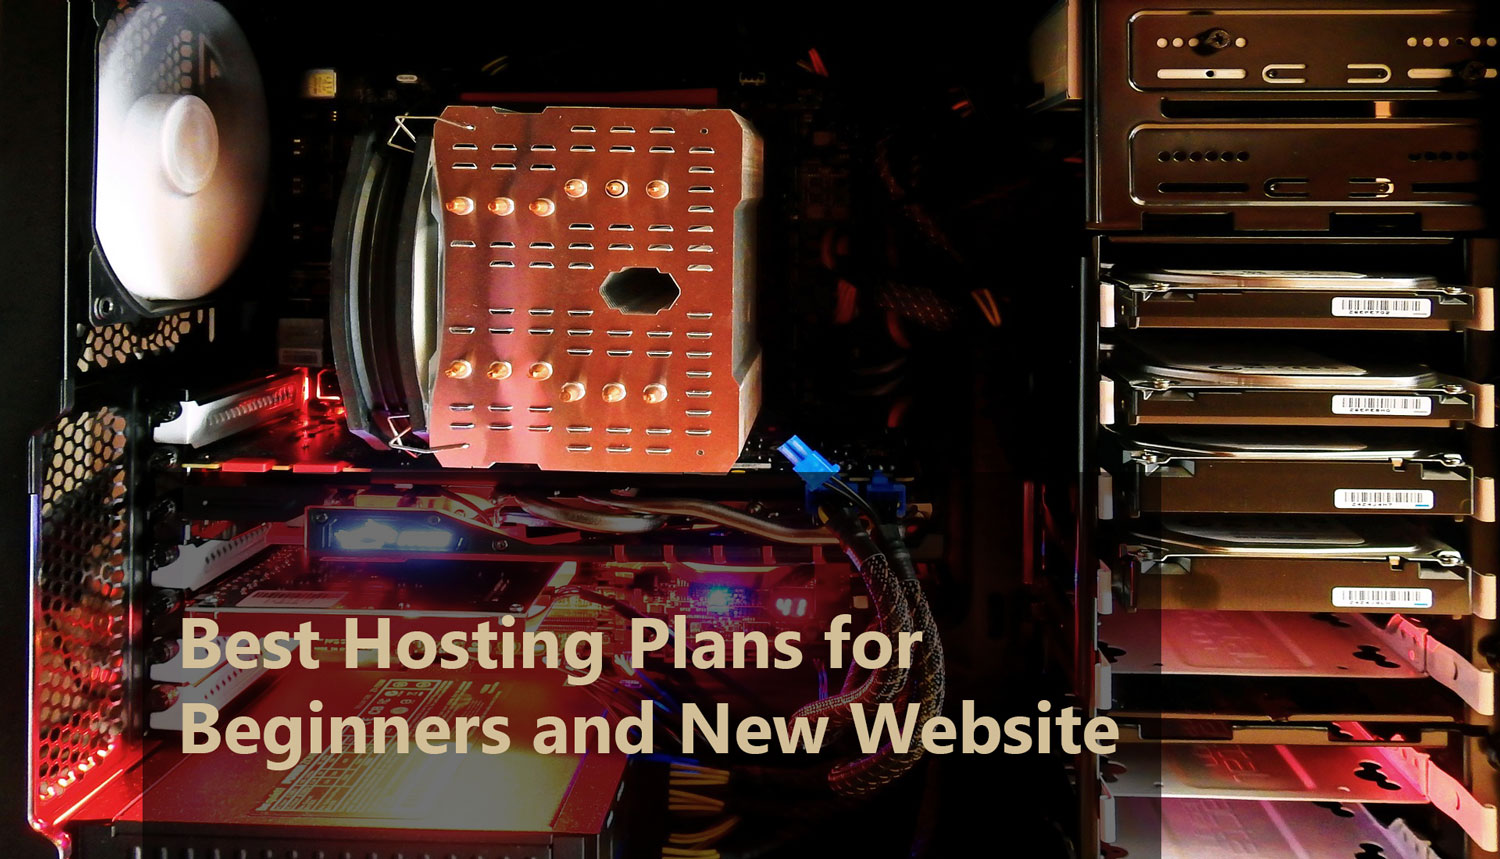 Best Hosting Plans for Beginners and New Website